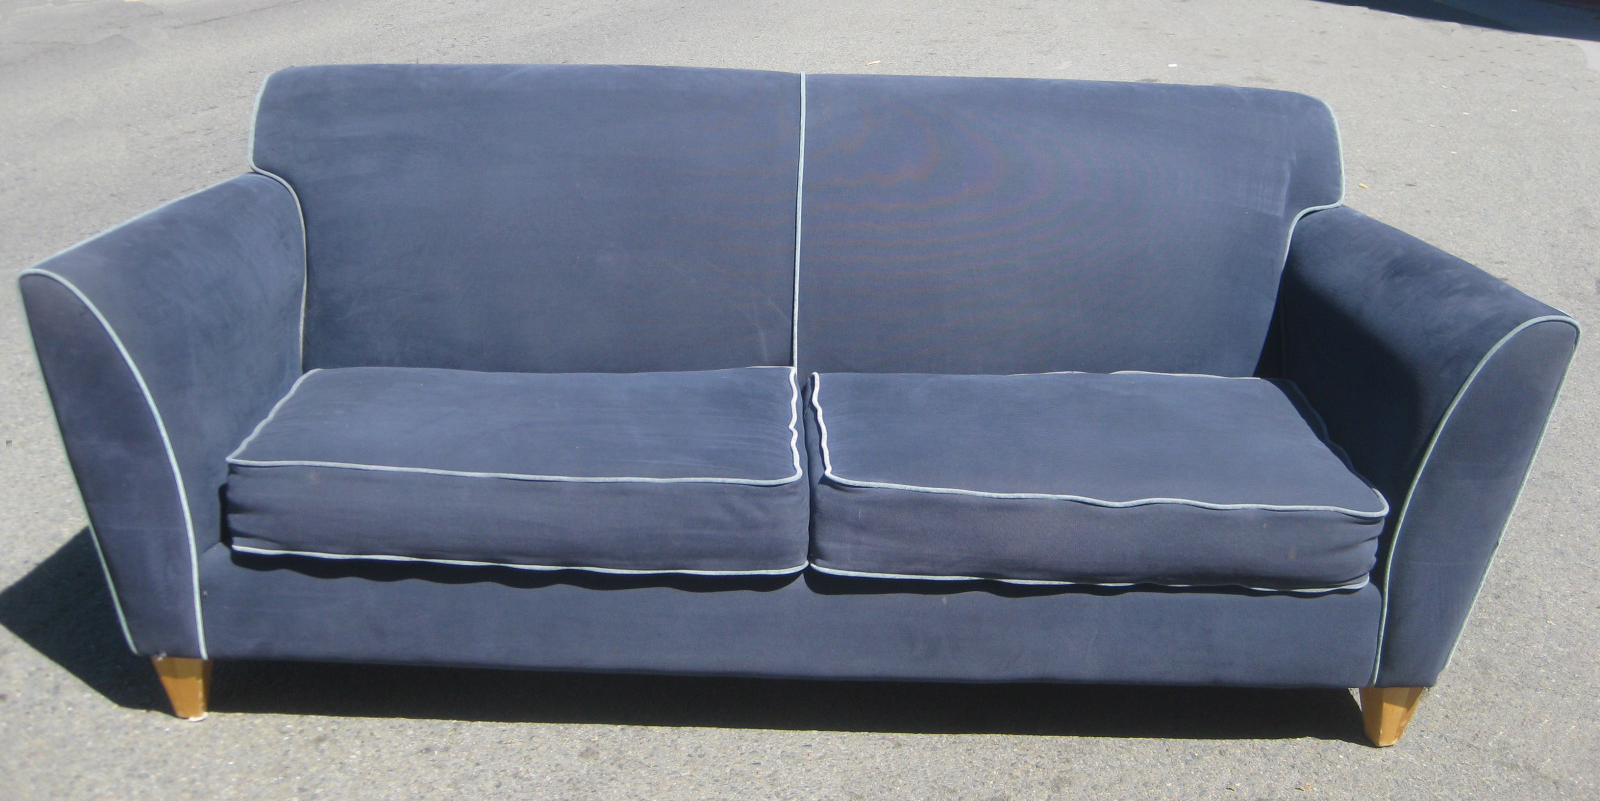 Charmant SOLD   Blue Sofa With White Piping   $45